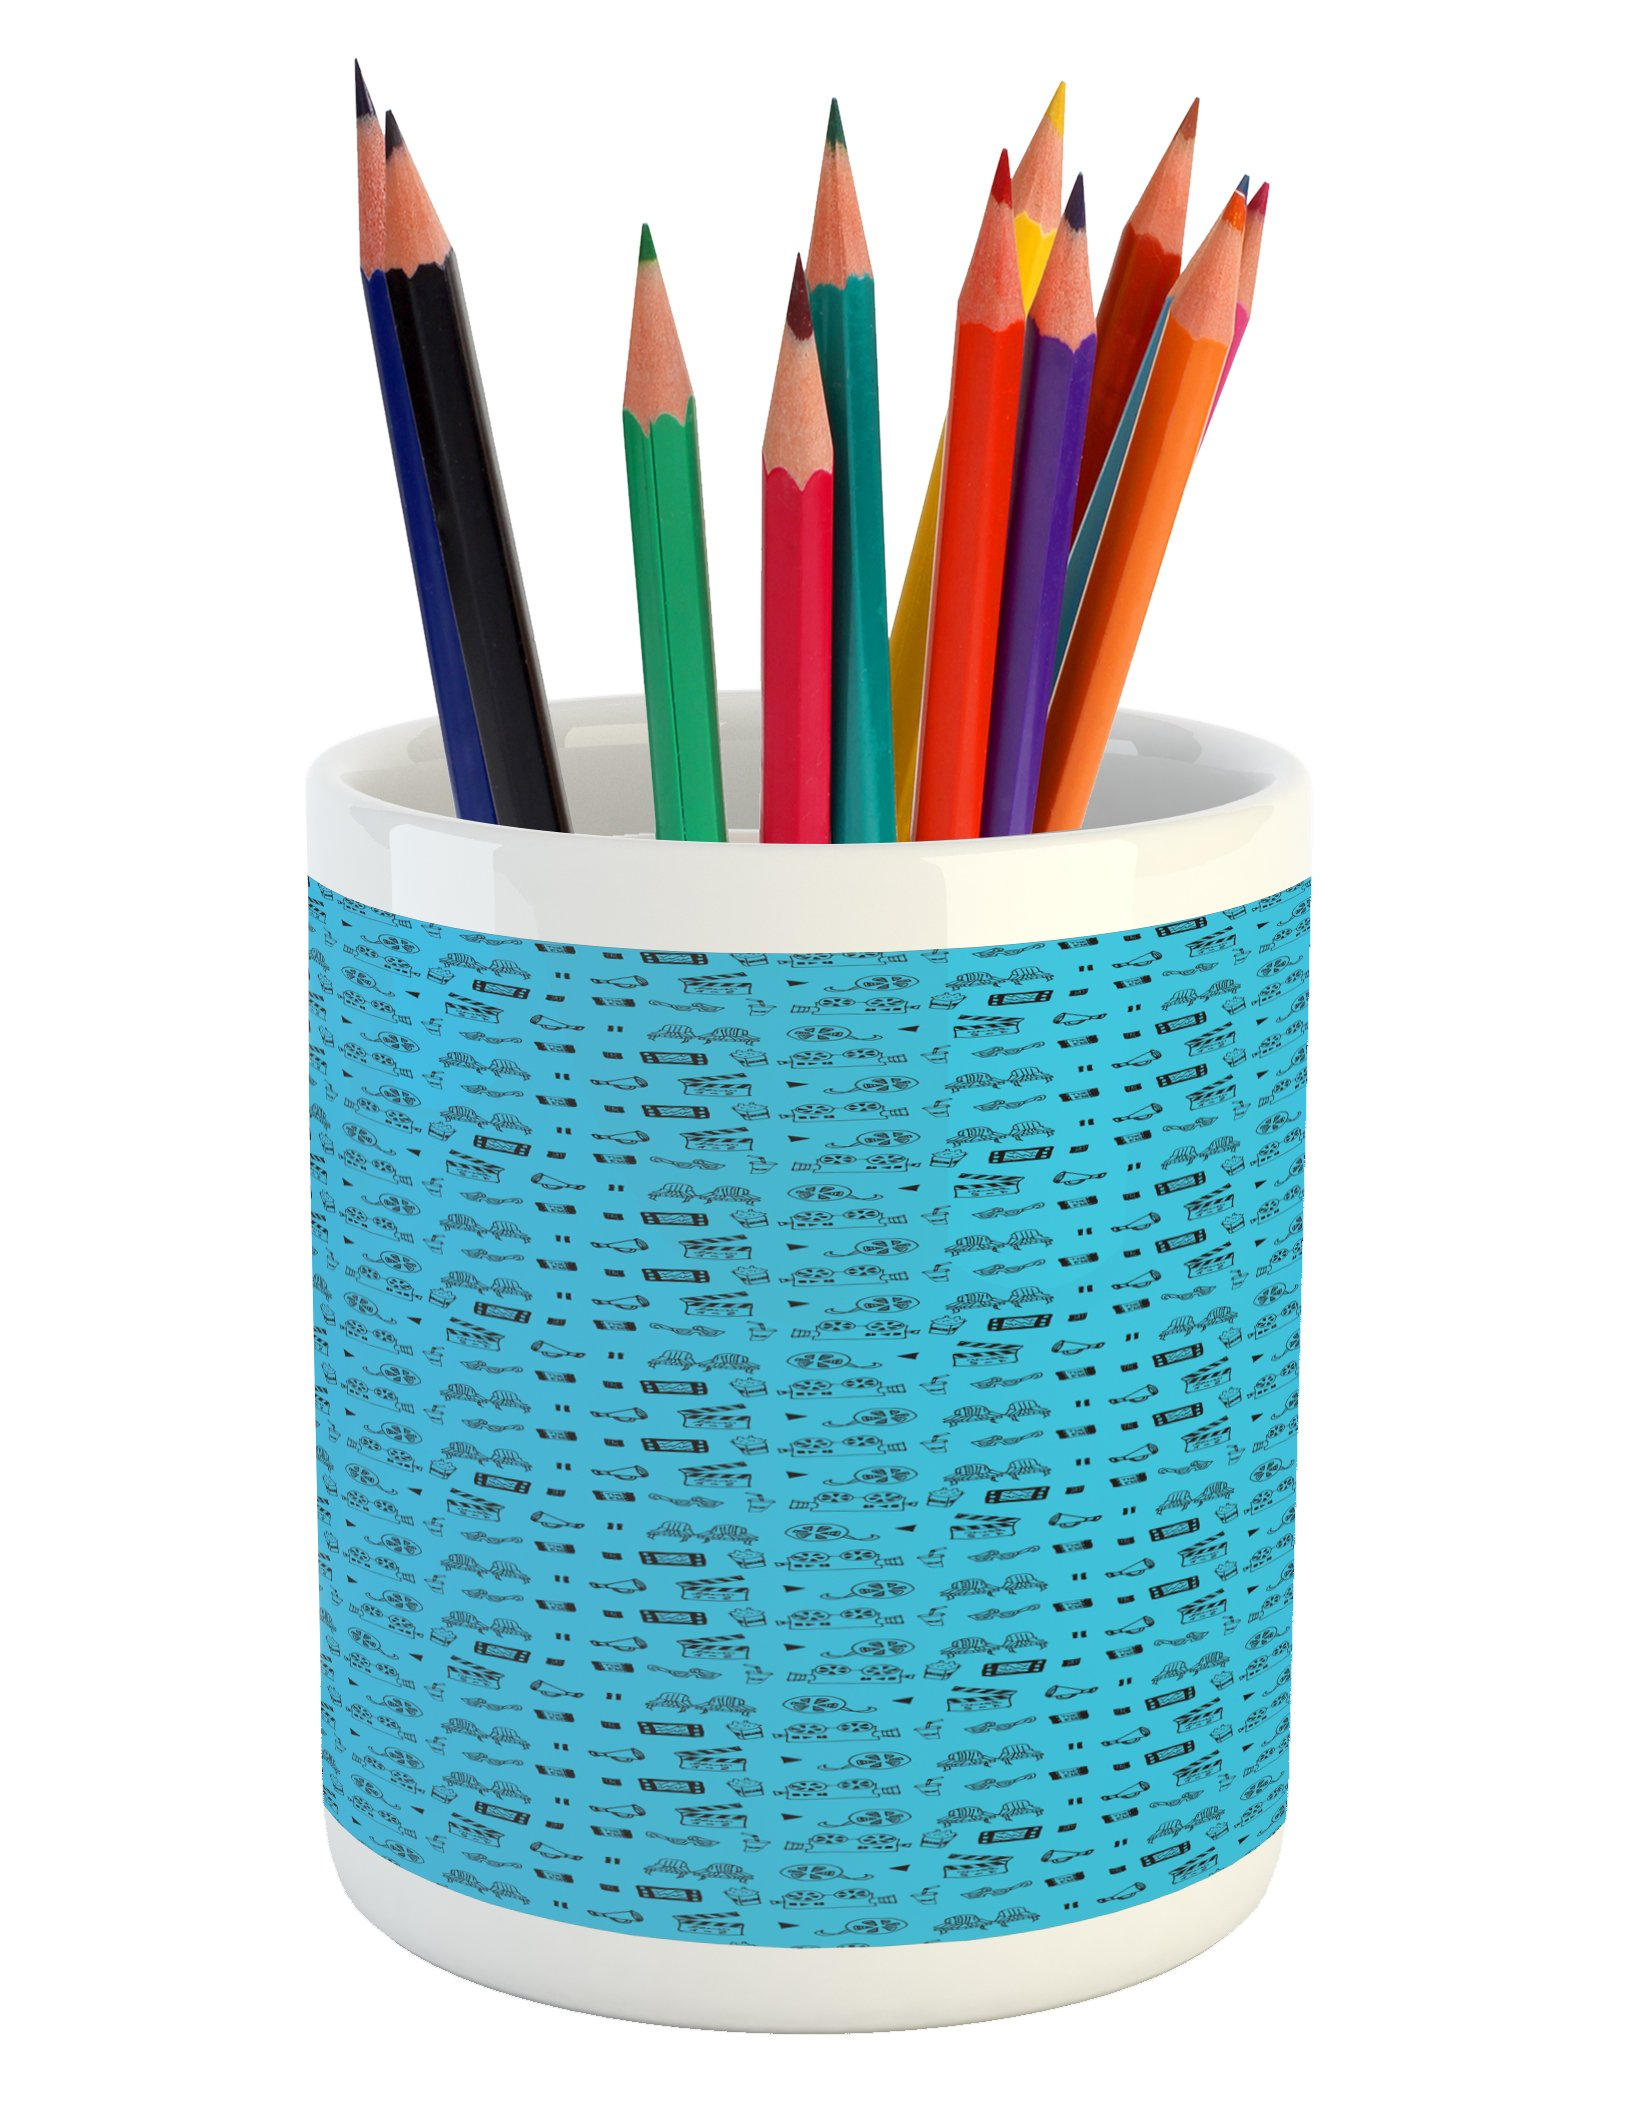 Ambesonne Blue and Black Pencil Pen Holder, Doodle Style Cinema Movie Theater Icons Camera Seat Popcorn Clapper, Printed Ceramic Pencil Pen Holder for Desk Office Accessory, Pale Blue and Black